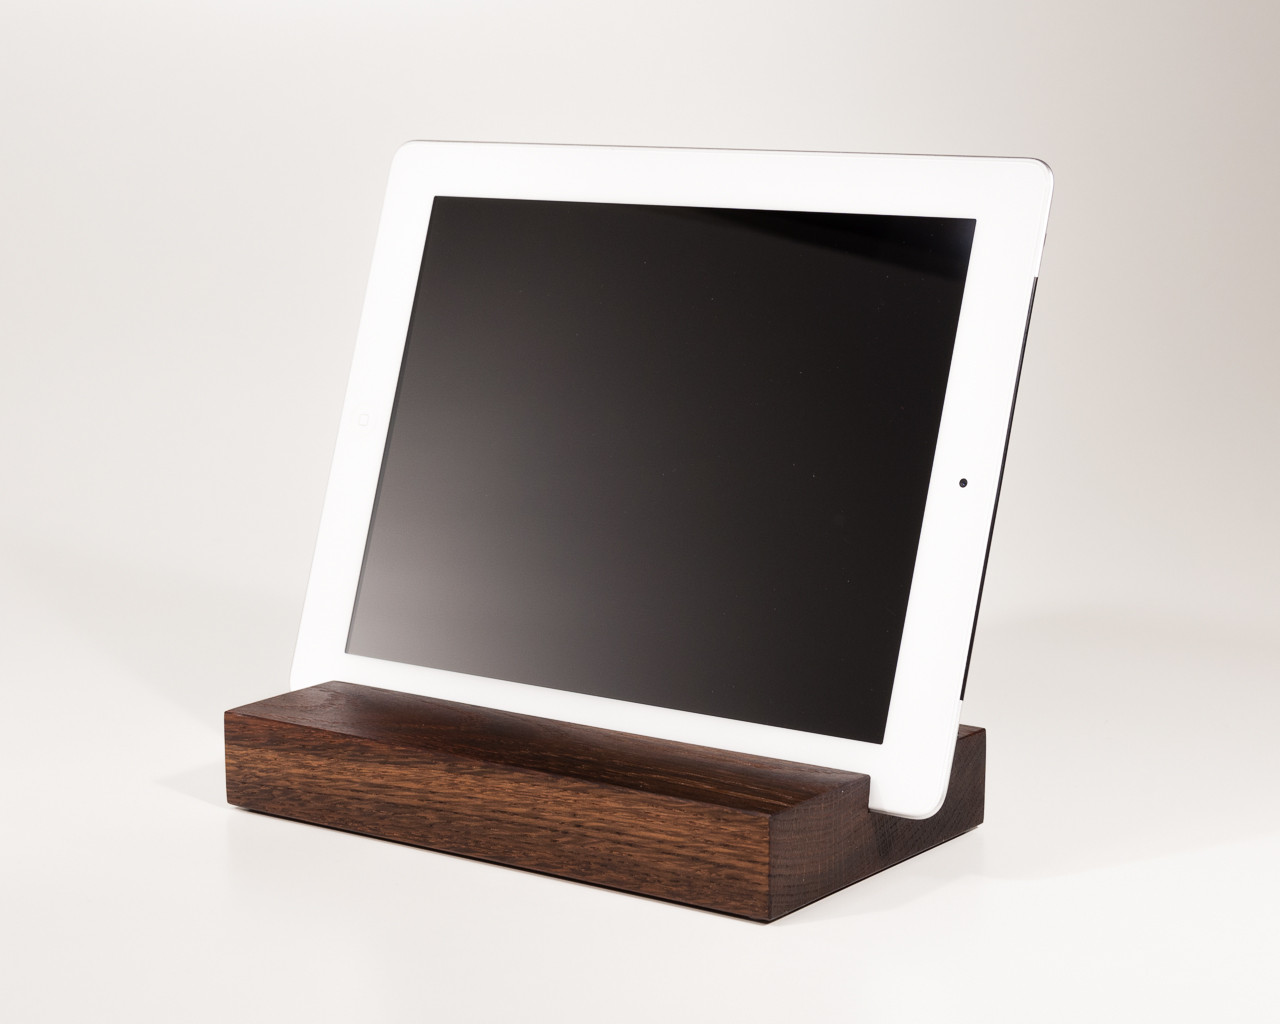 ipad und tablet halterung halter aus holz und beton. Black Bedroom Furniture Sets. Home Design Ideas